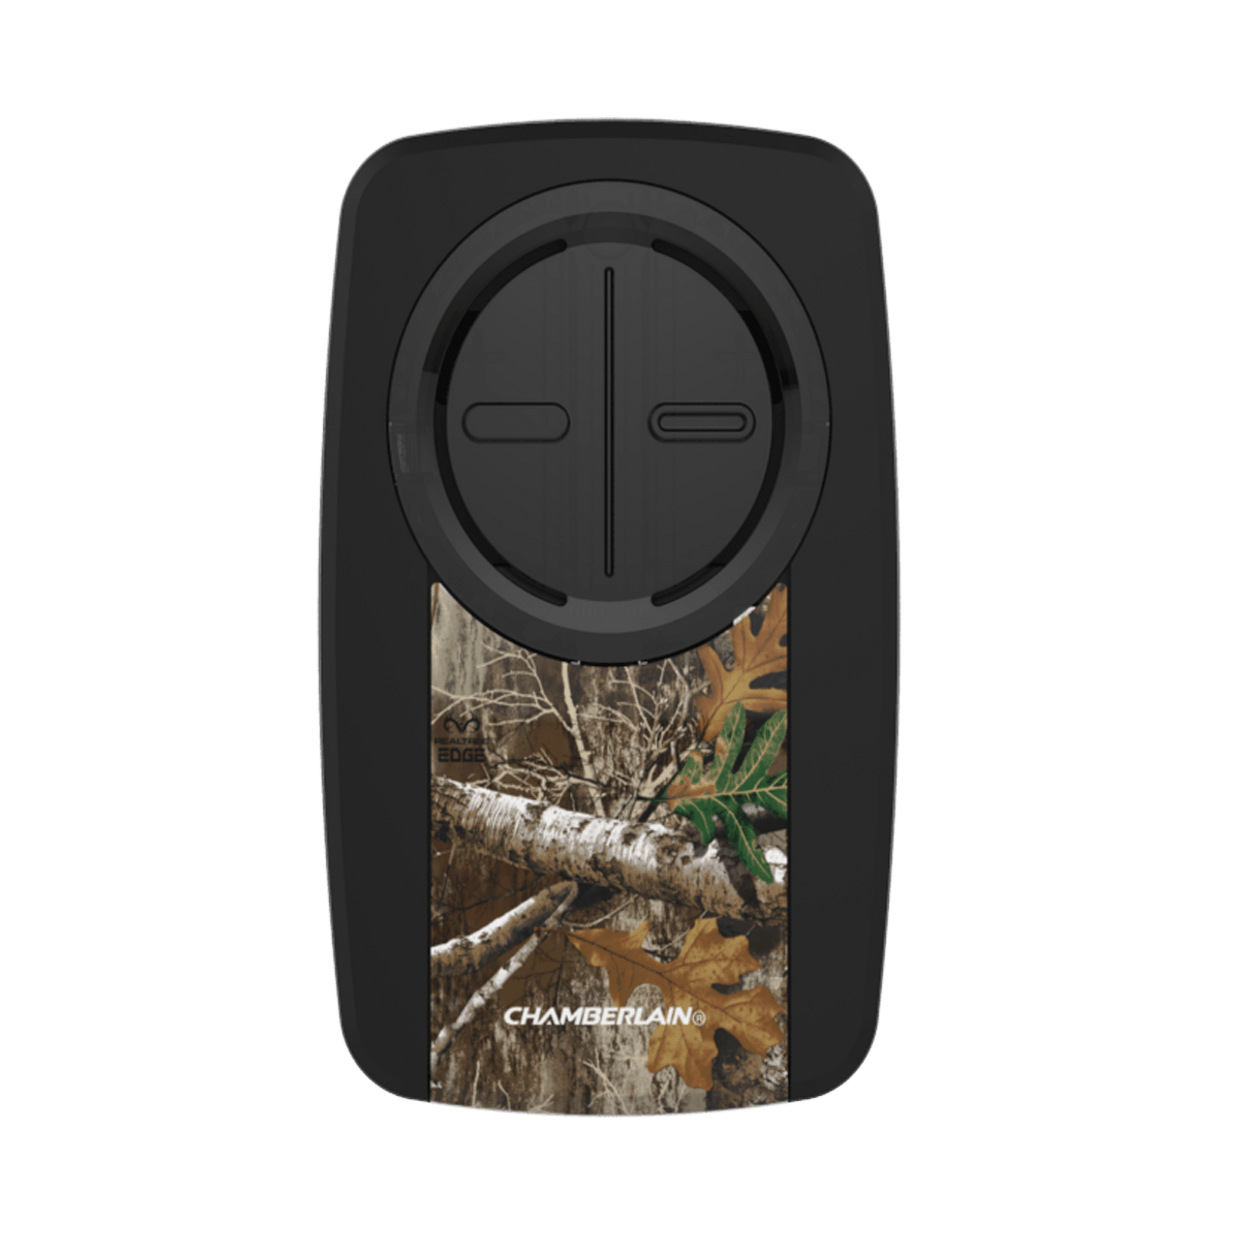 Garage Door Opener Remote Set Up Realtree Camo Garage Door Remote Chamberlain